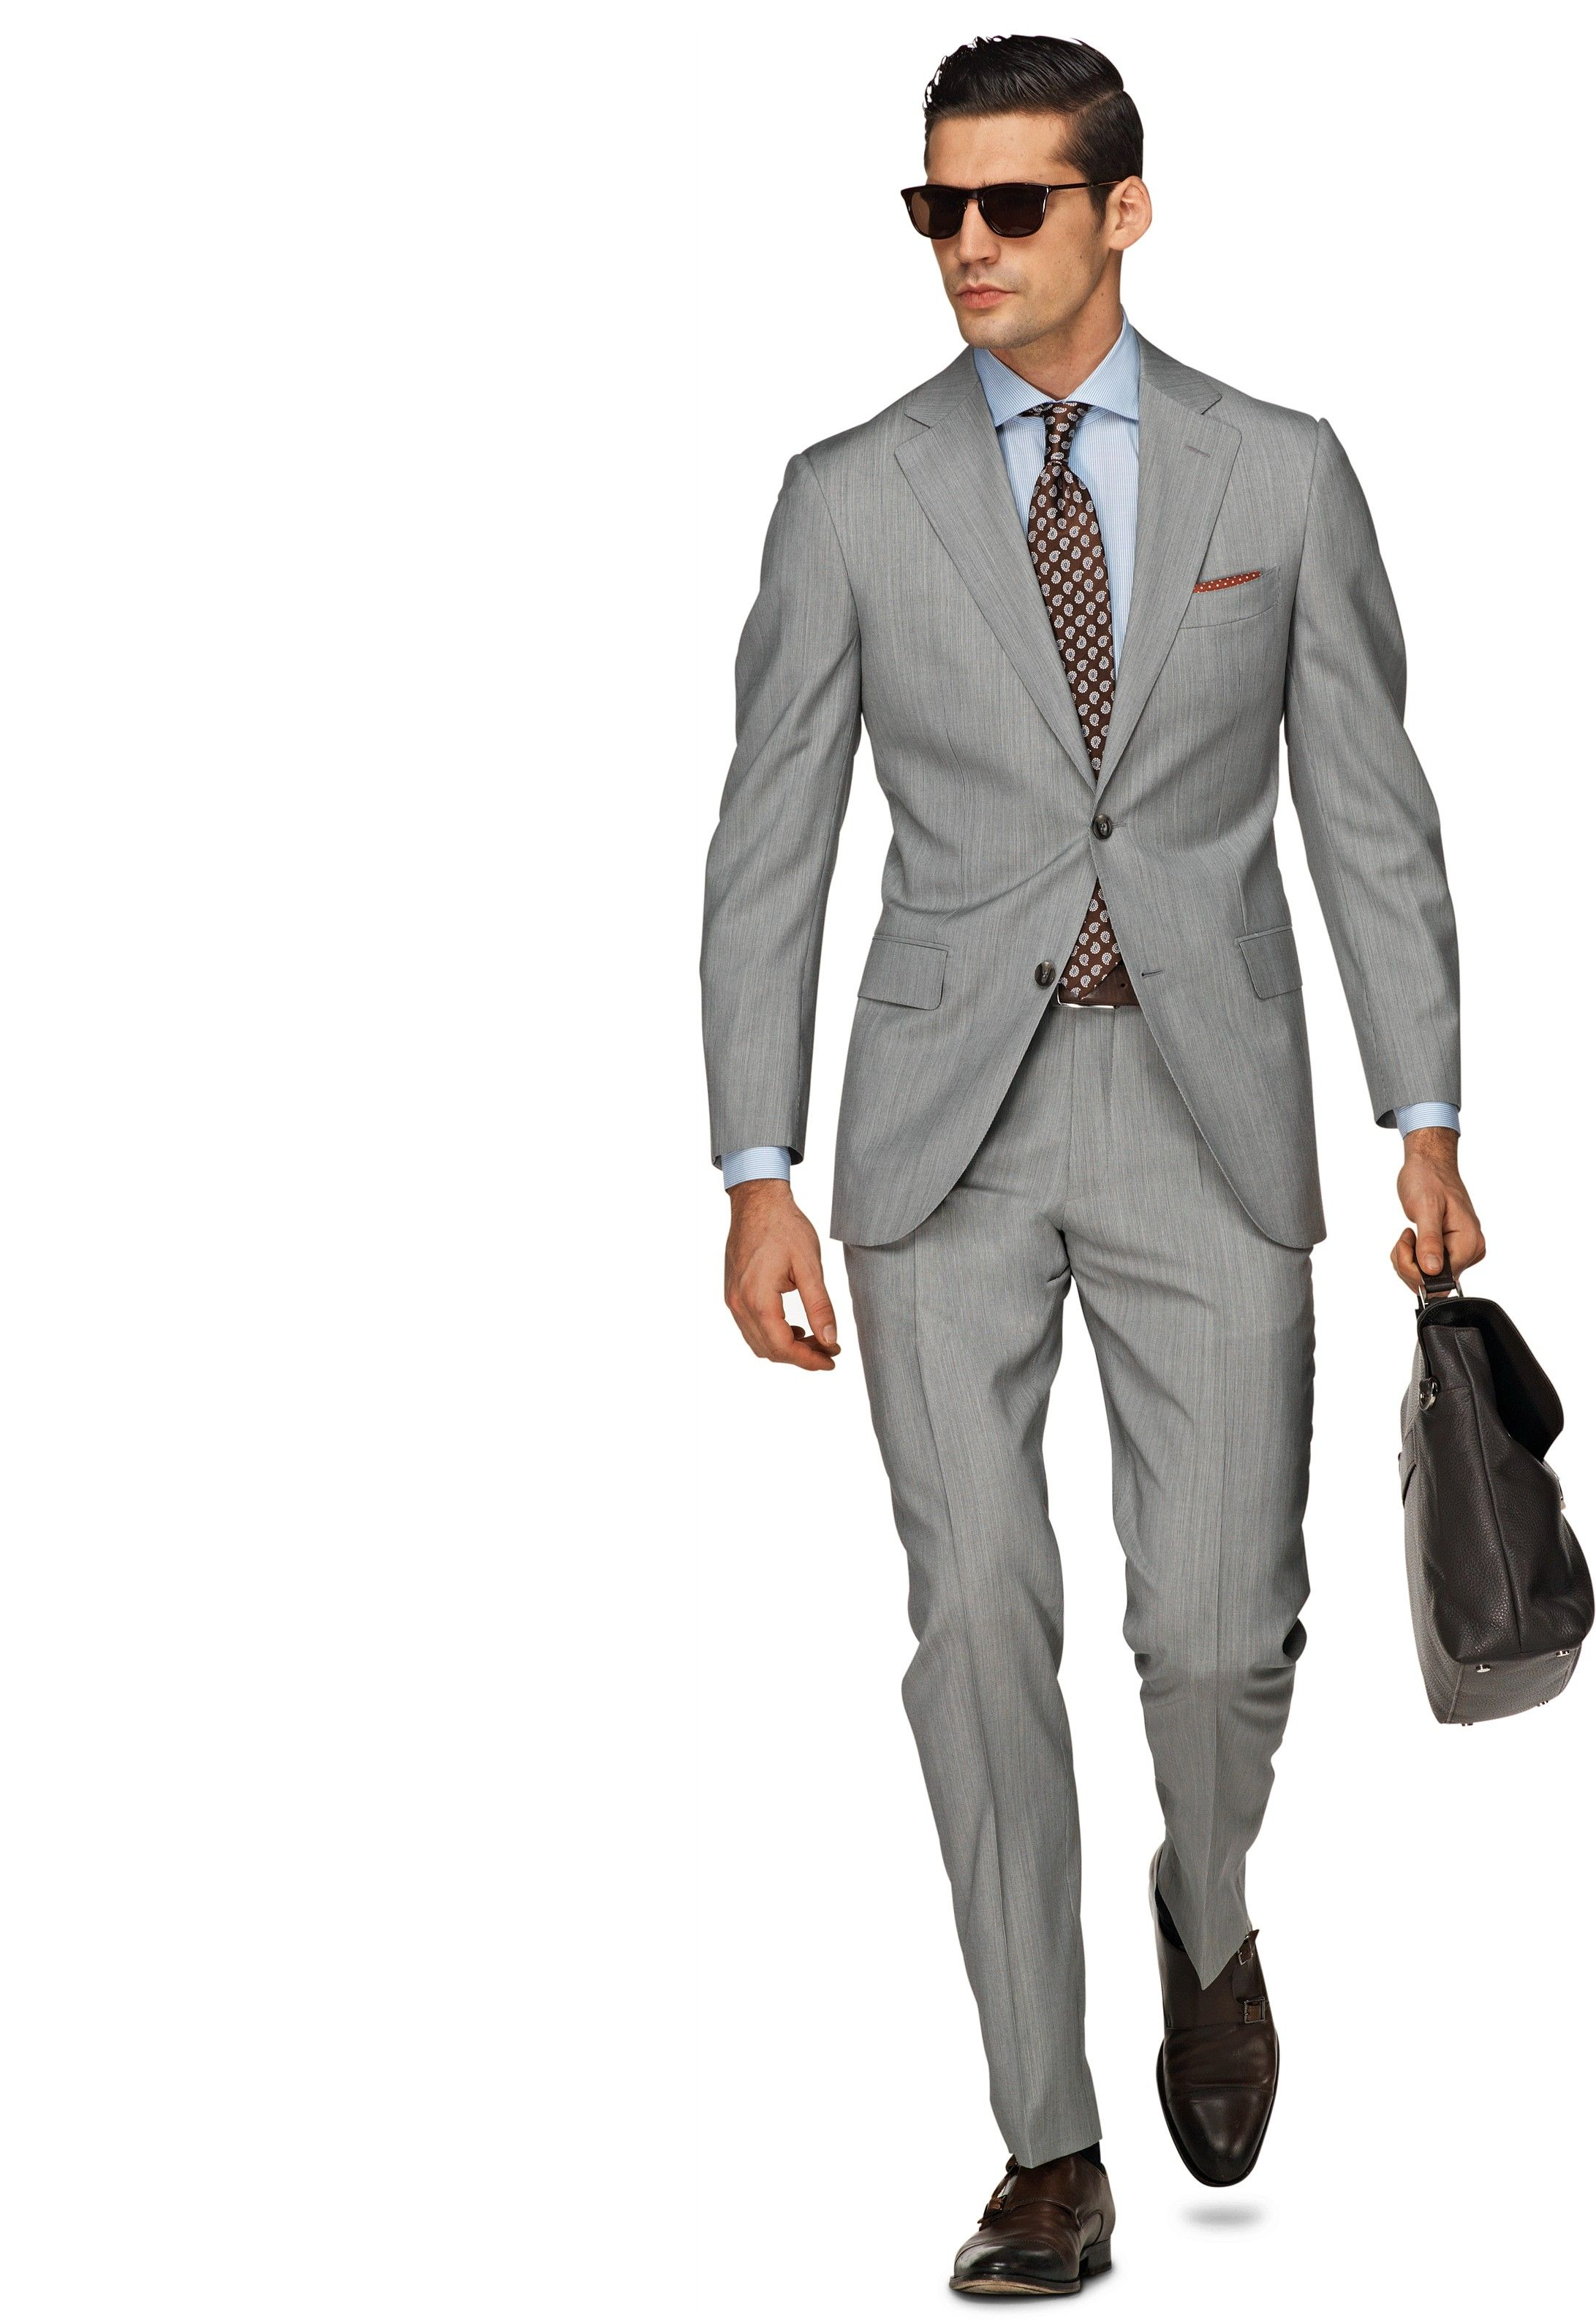 Men's Clothing Fashion Style Suitsupply Gray Blue Line Napoli Wool Suit 44l Clothing, Shoes & Accessories